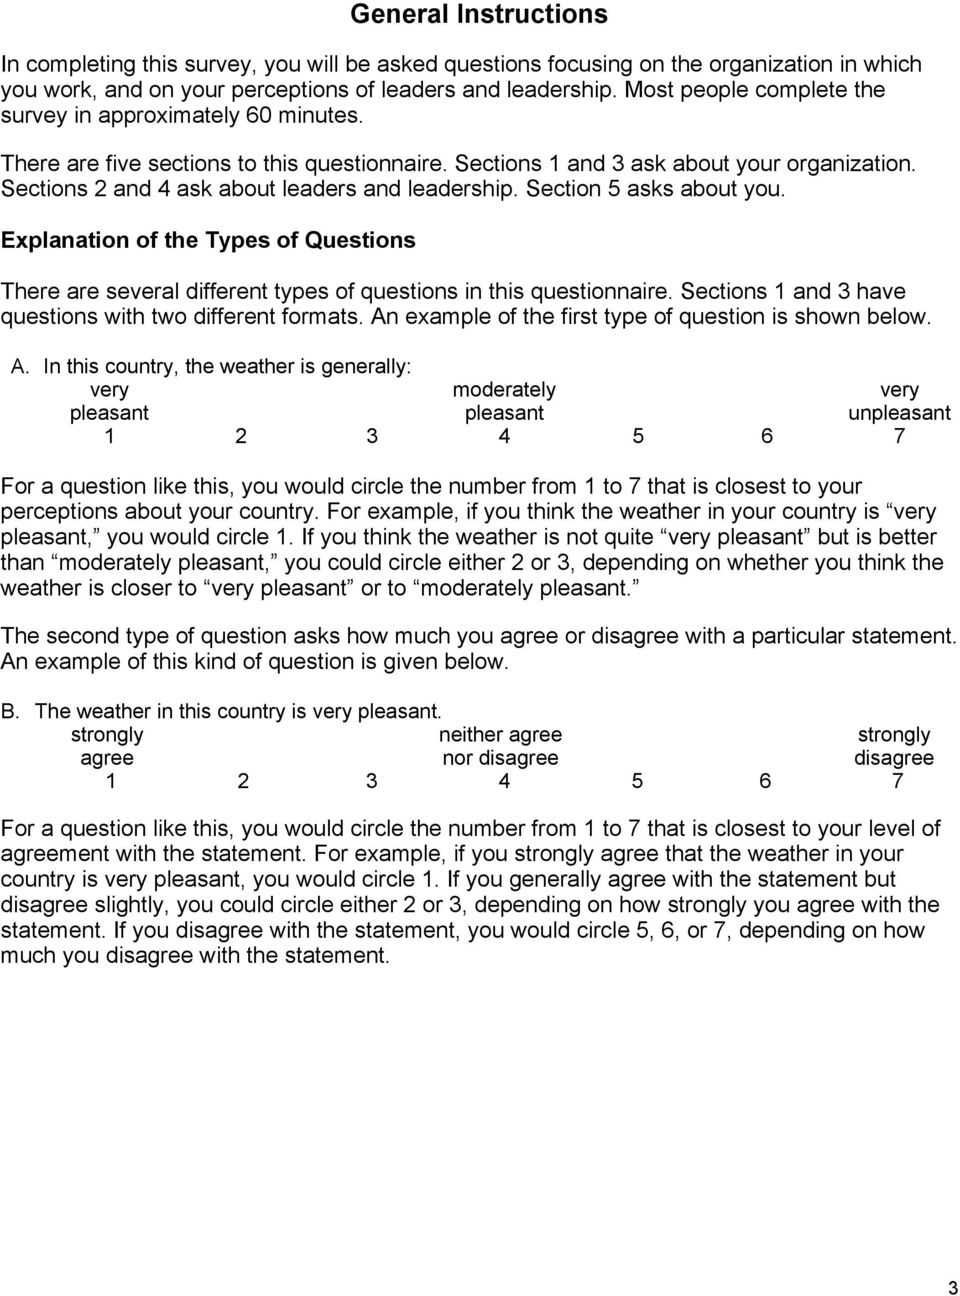 Sections 2 and 4 ask about leaders and leadership. Section 5 asks about you. Explanation of the Types of Questions There are several different types of questions in this questionnaire.